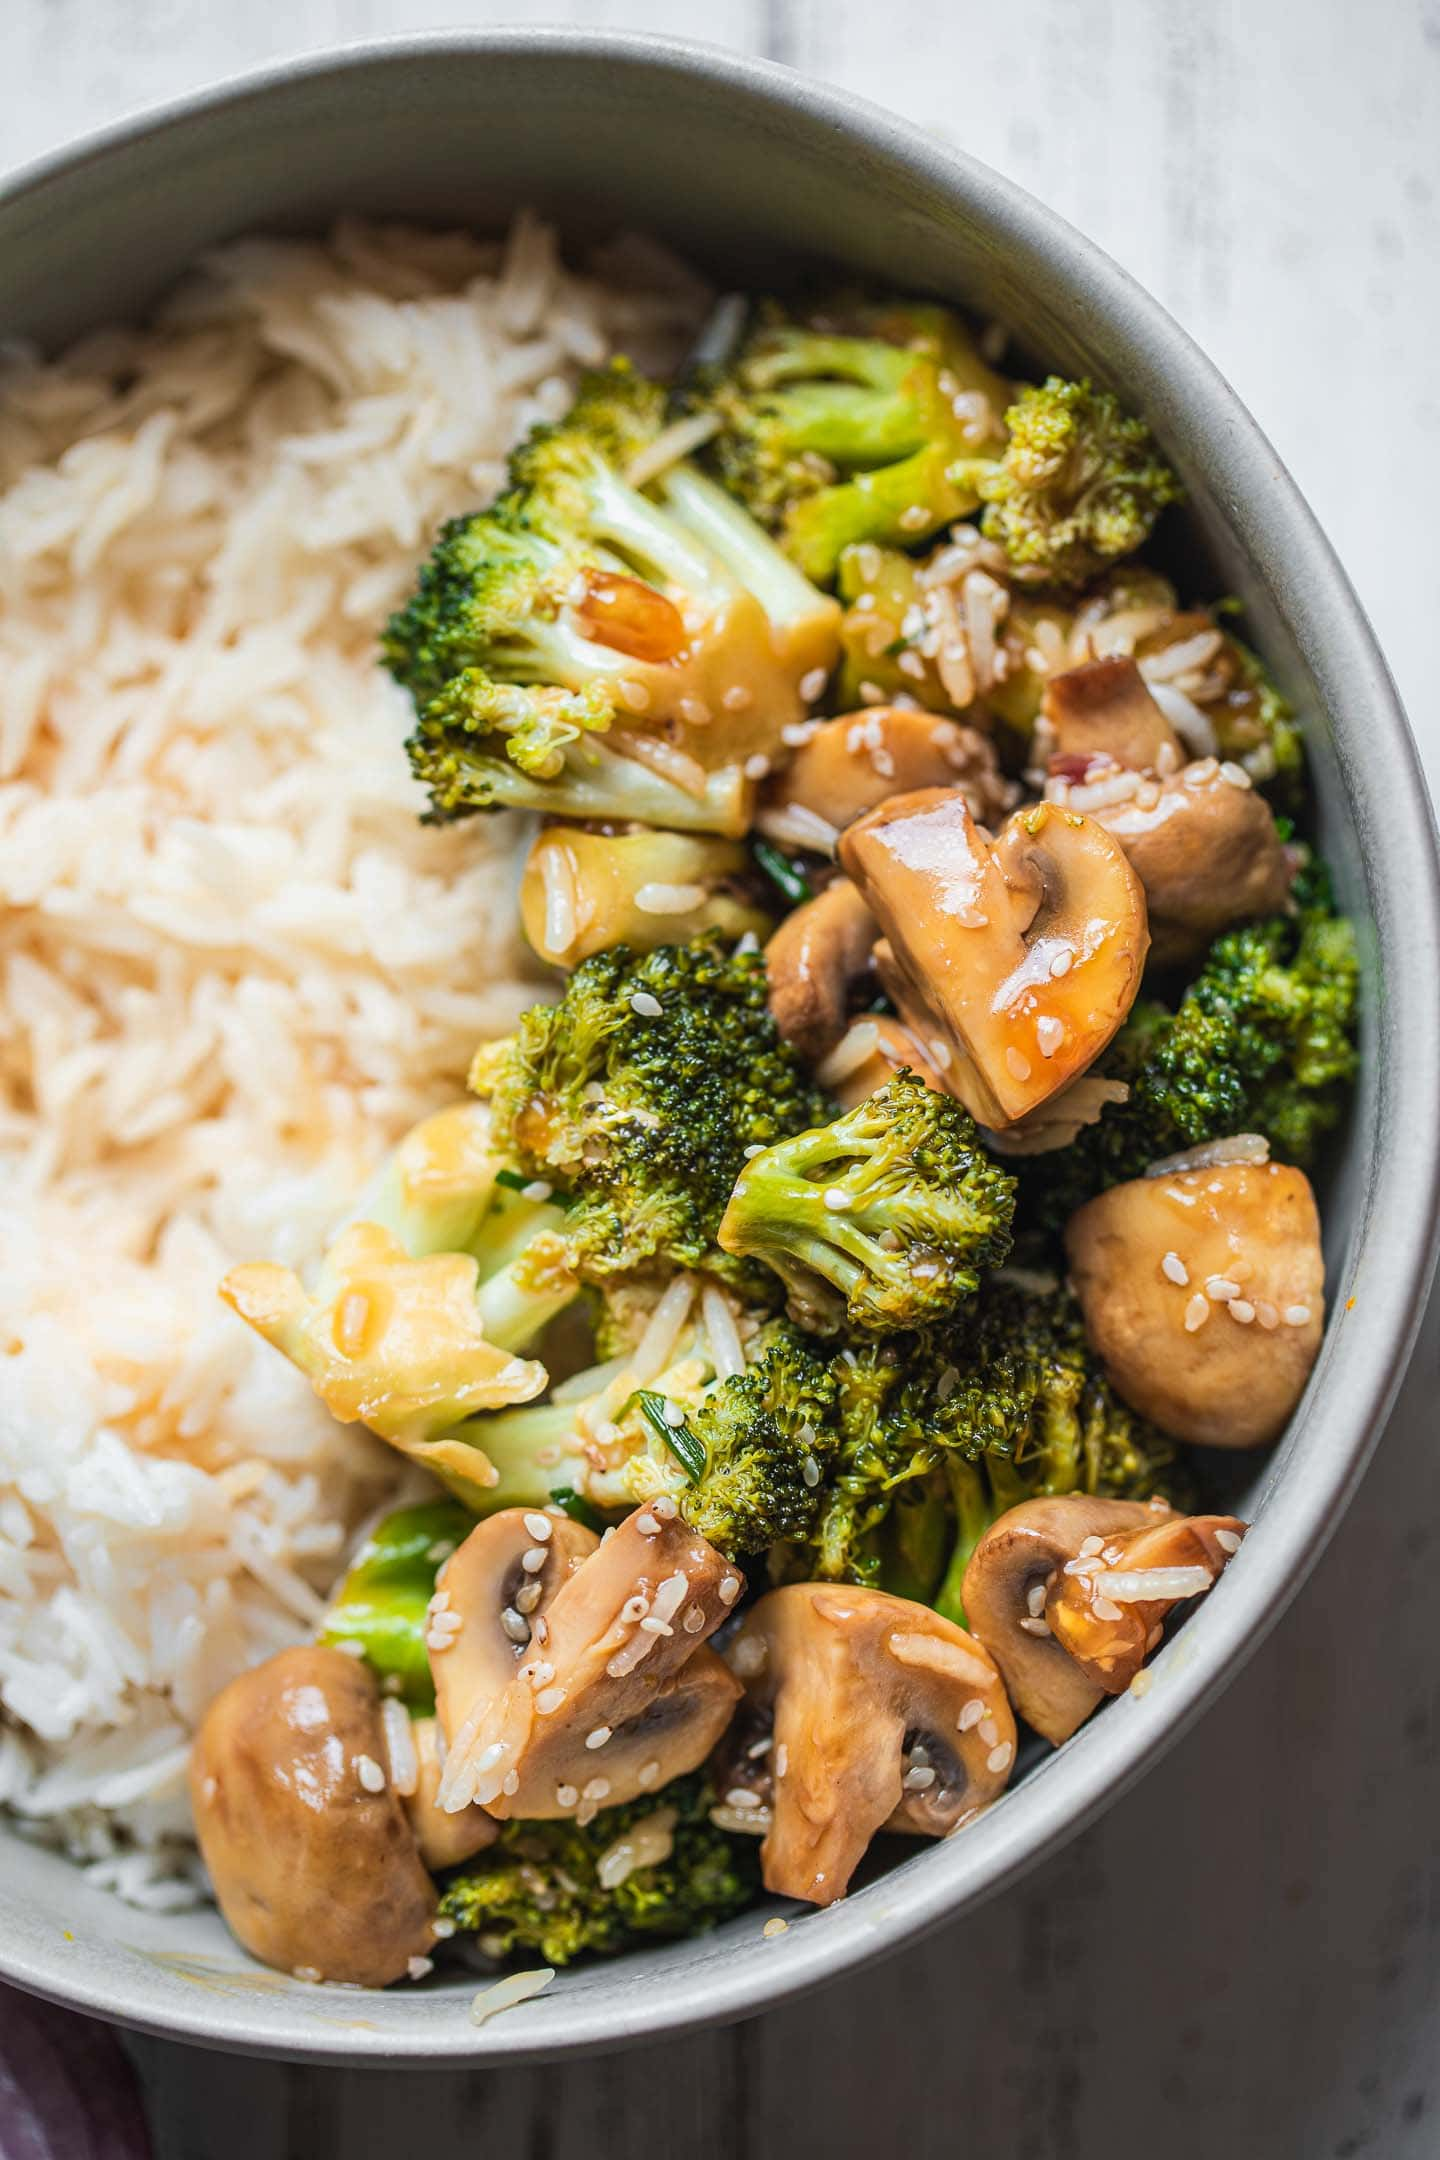 Simple vegan broccoli stir-fry